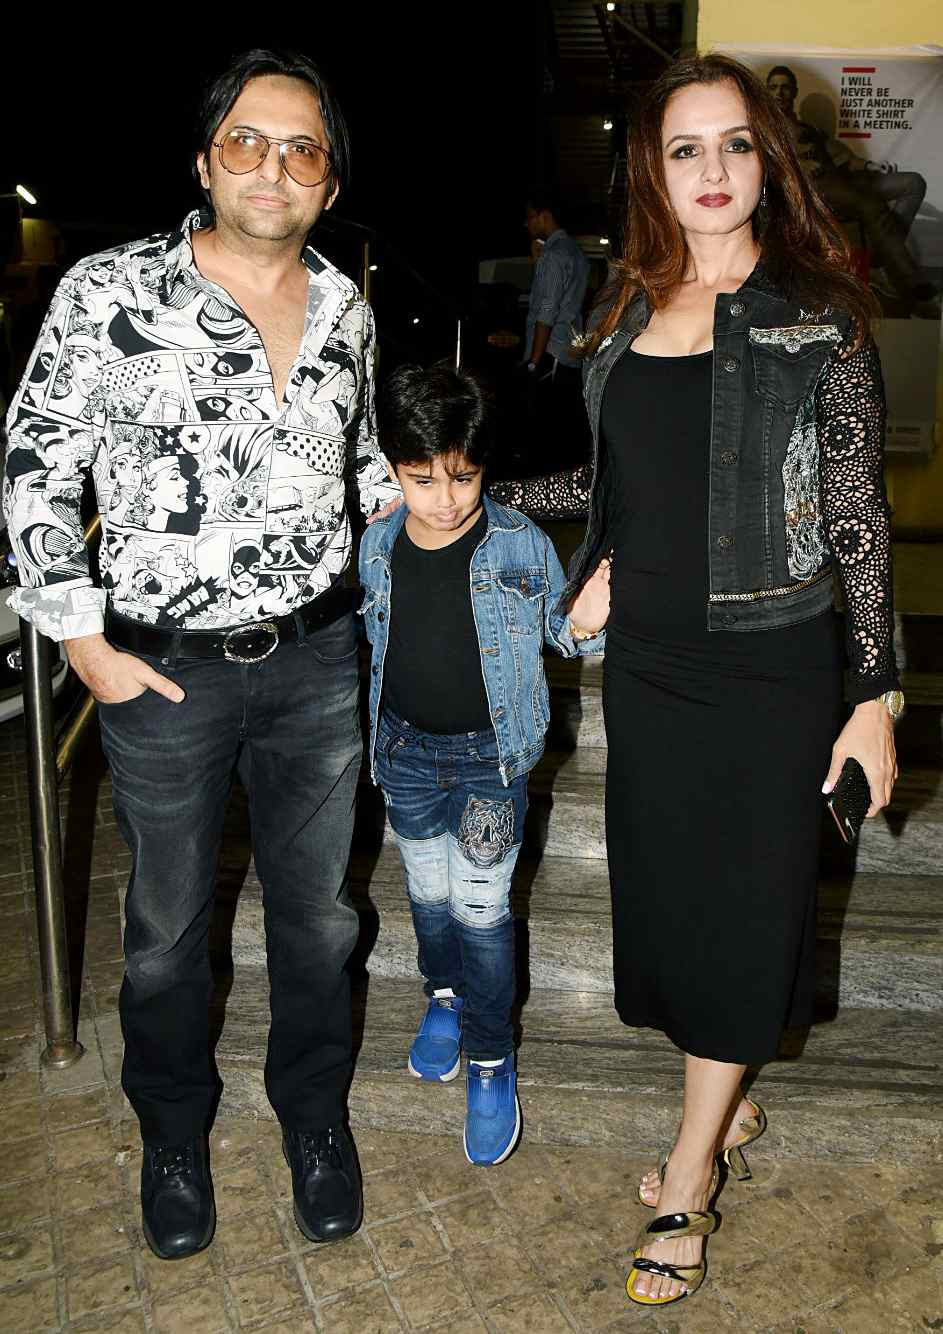 Farhan Furniturewala with his wife Laila Khan and son